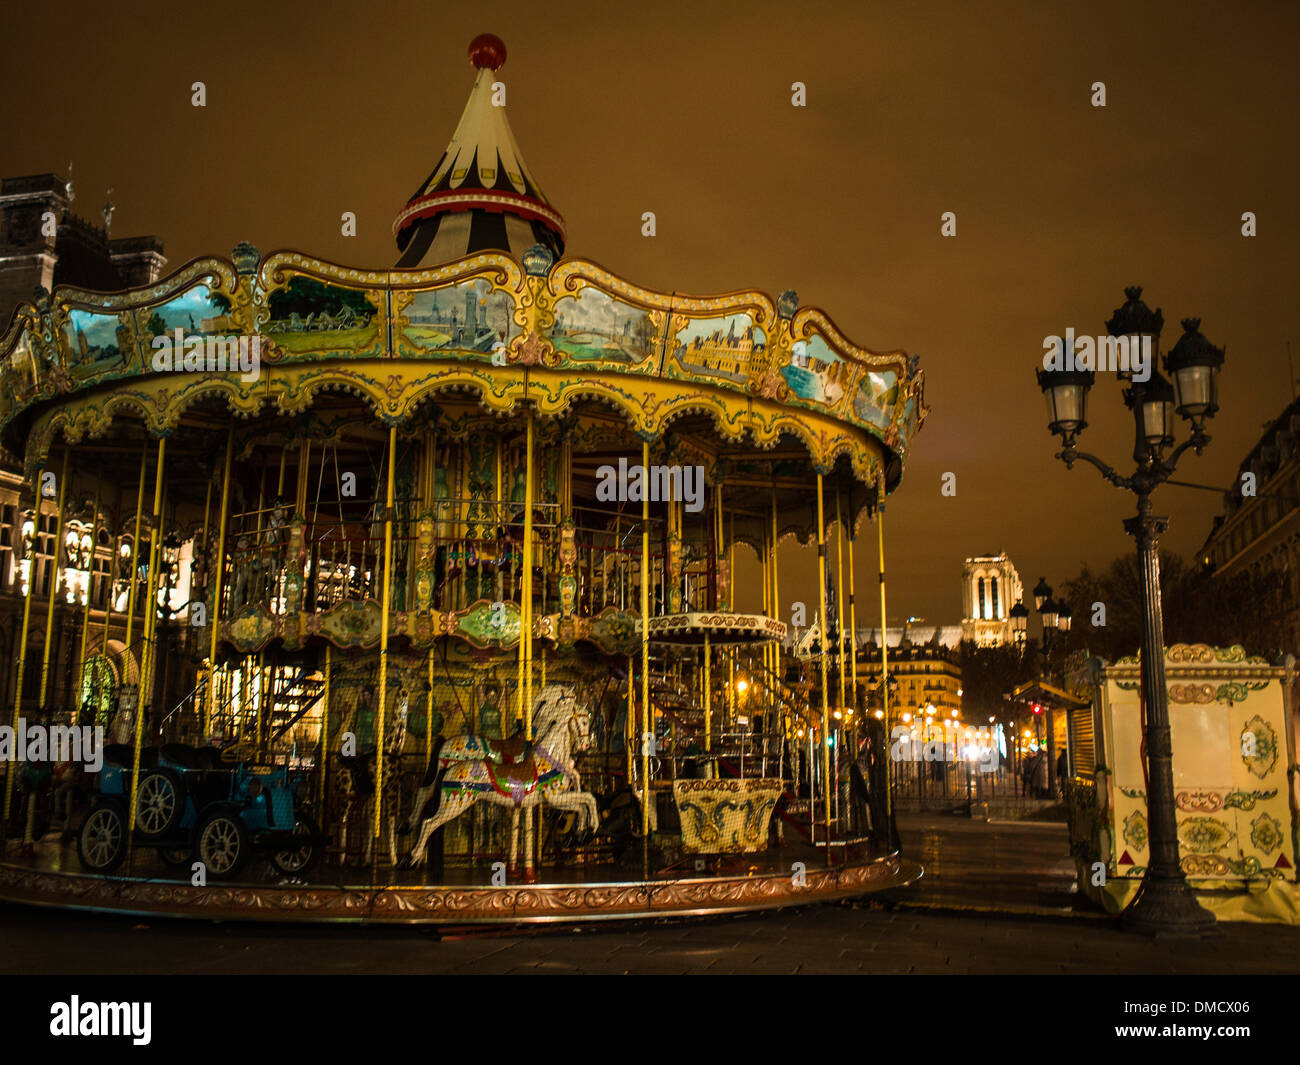 Old carousel in the night lights - Stock Image